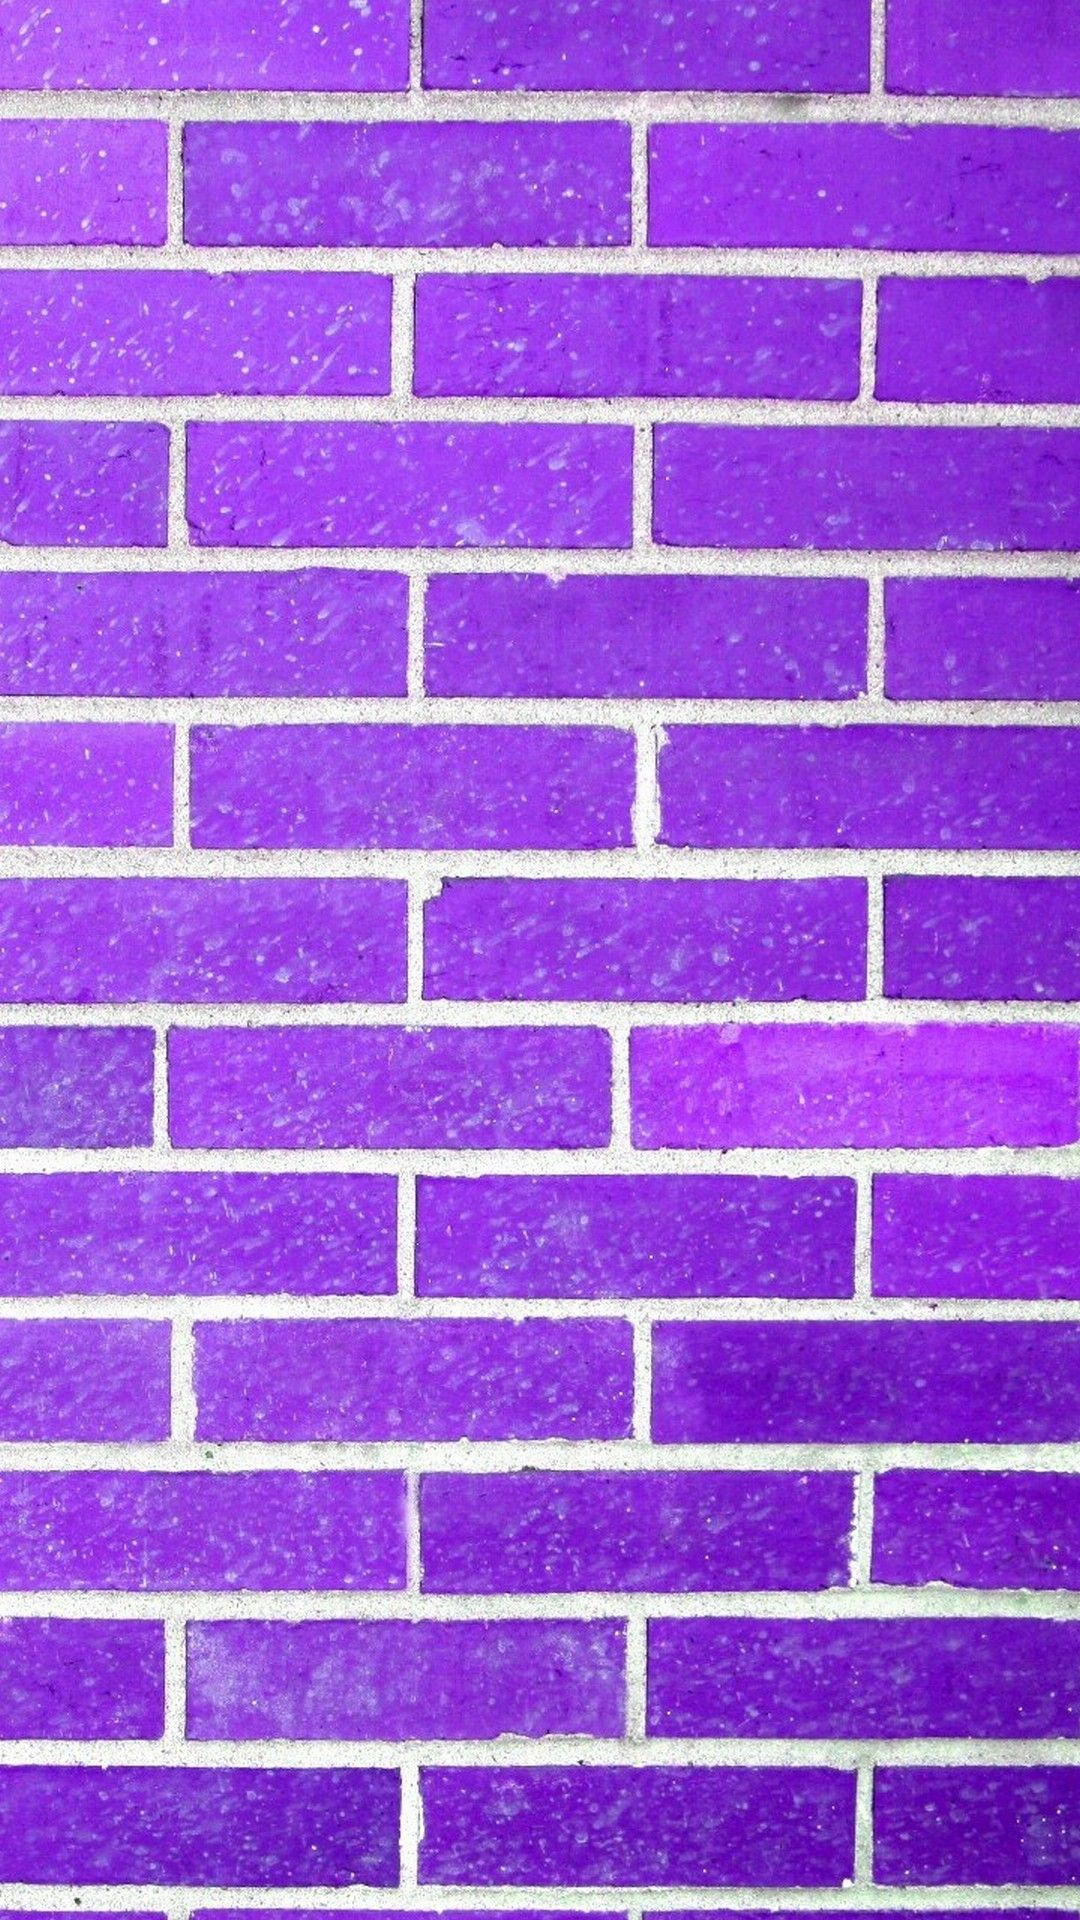 1080x1920 Purple Brick Wall Texture iPhone Wallpaper | 2019 3D iPhone ...